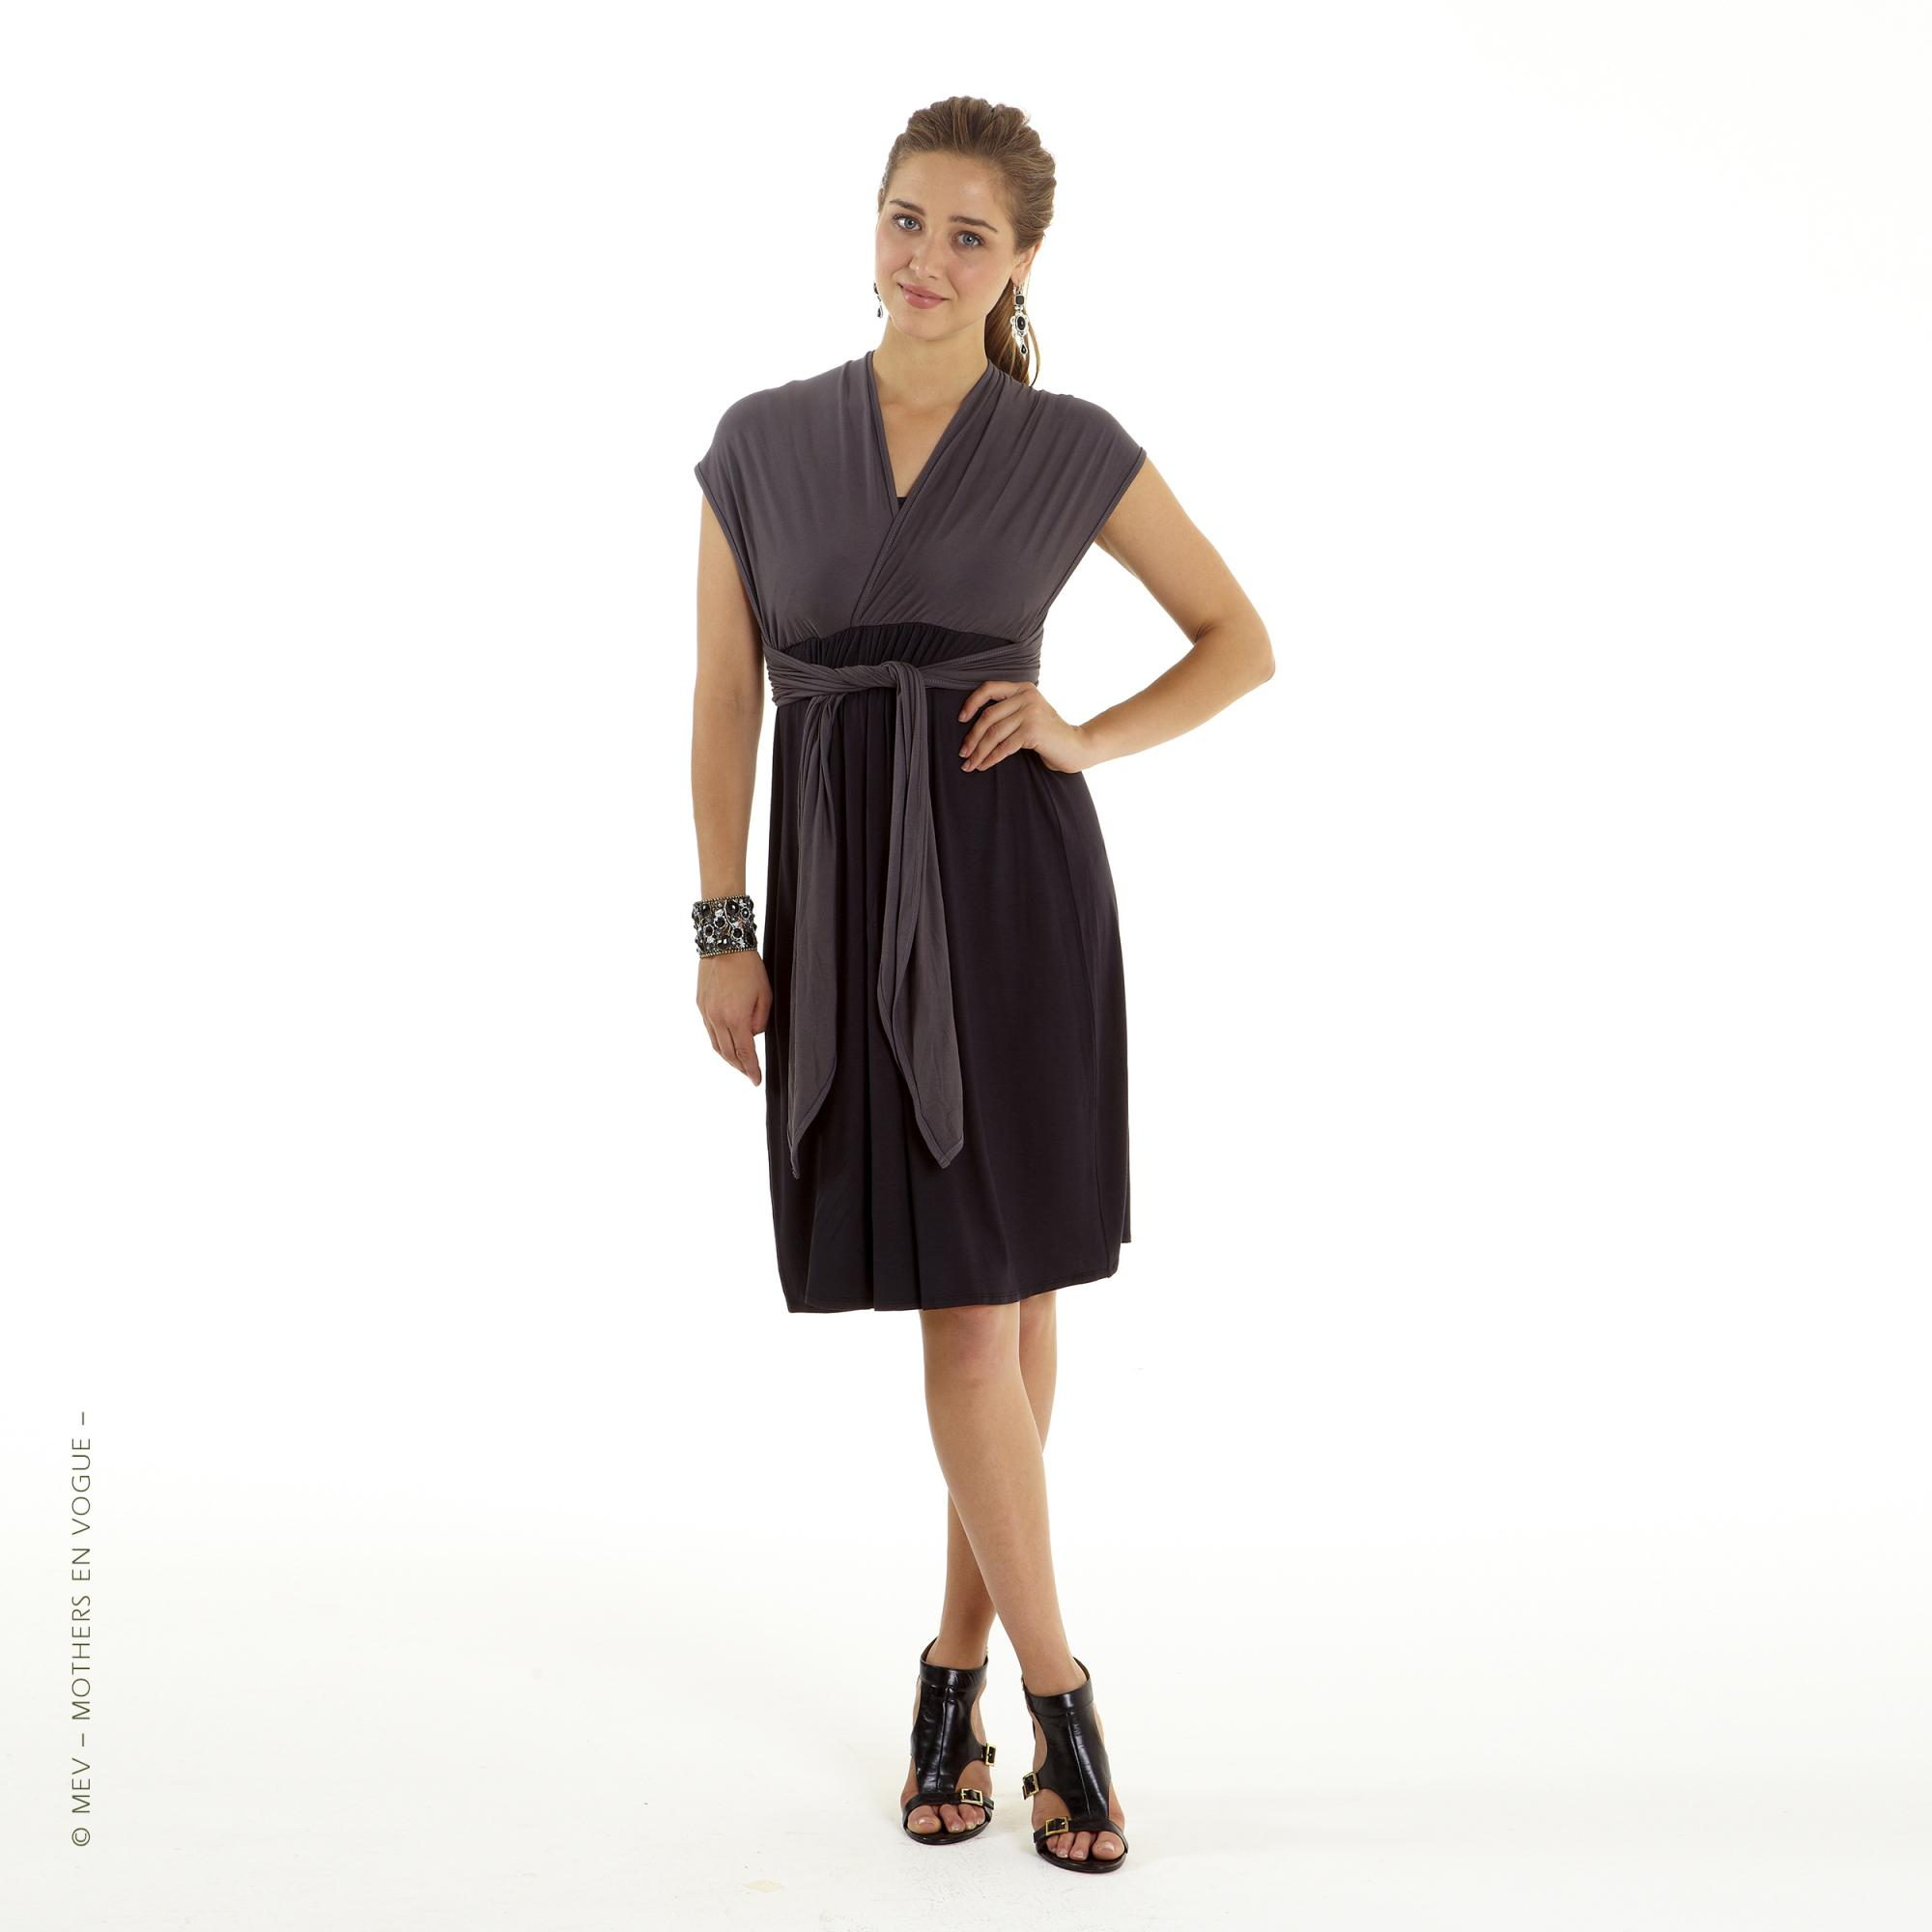 mothers-en-vogue-infinity-wrap-nursing-dress-1.jpg